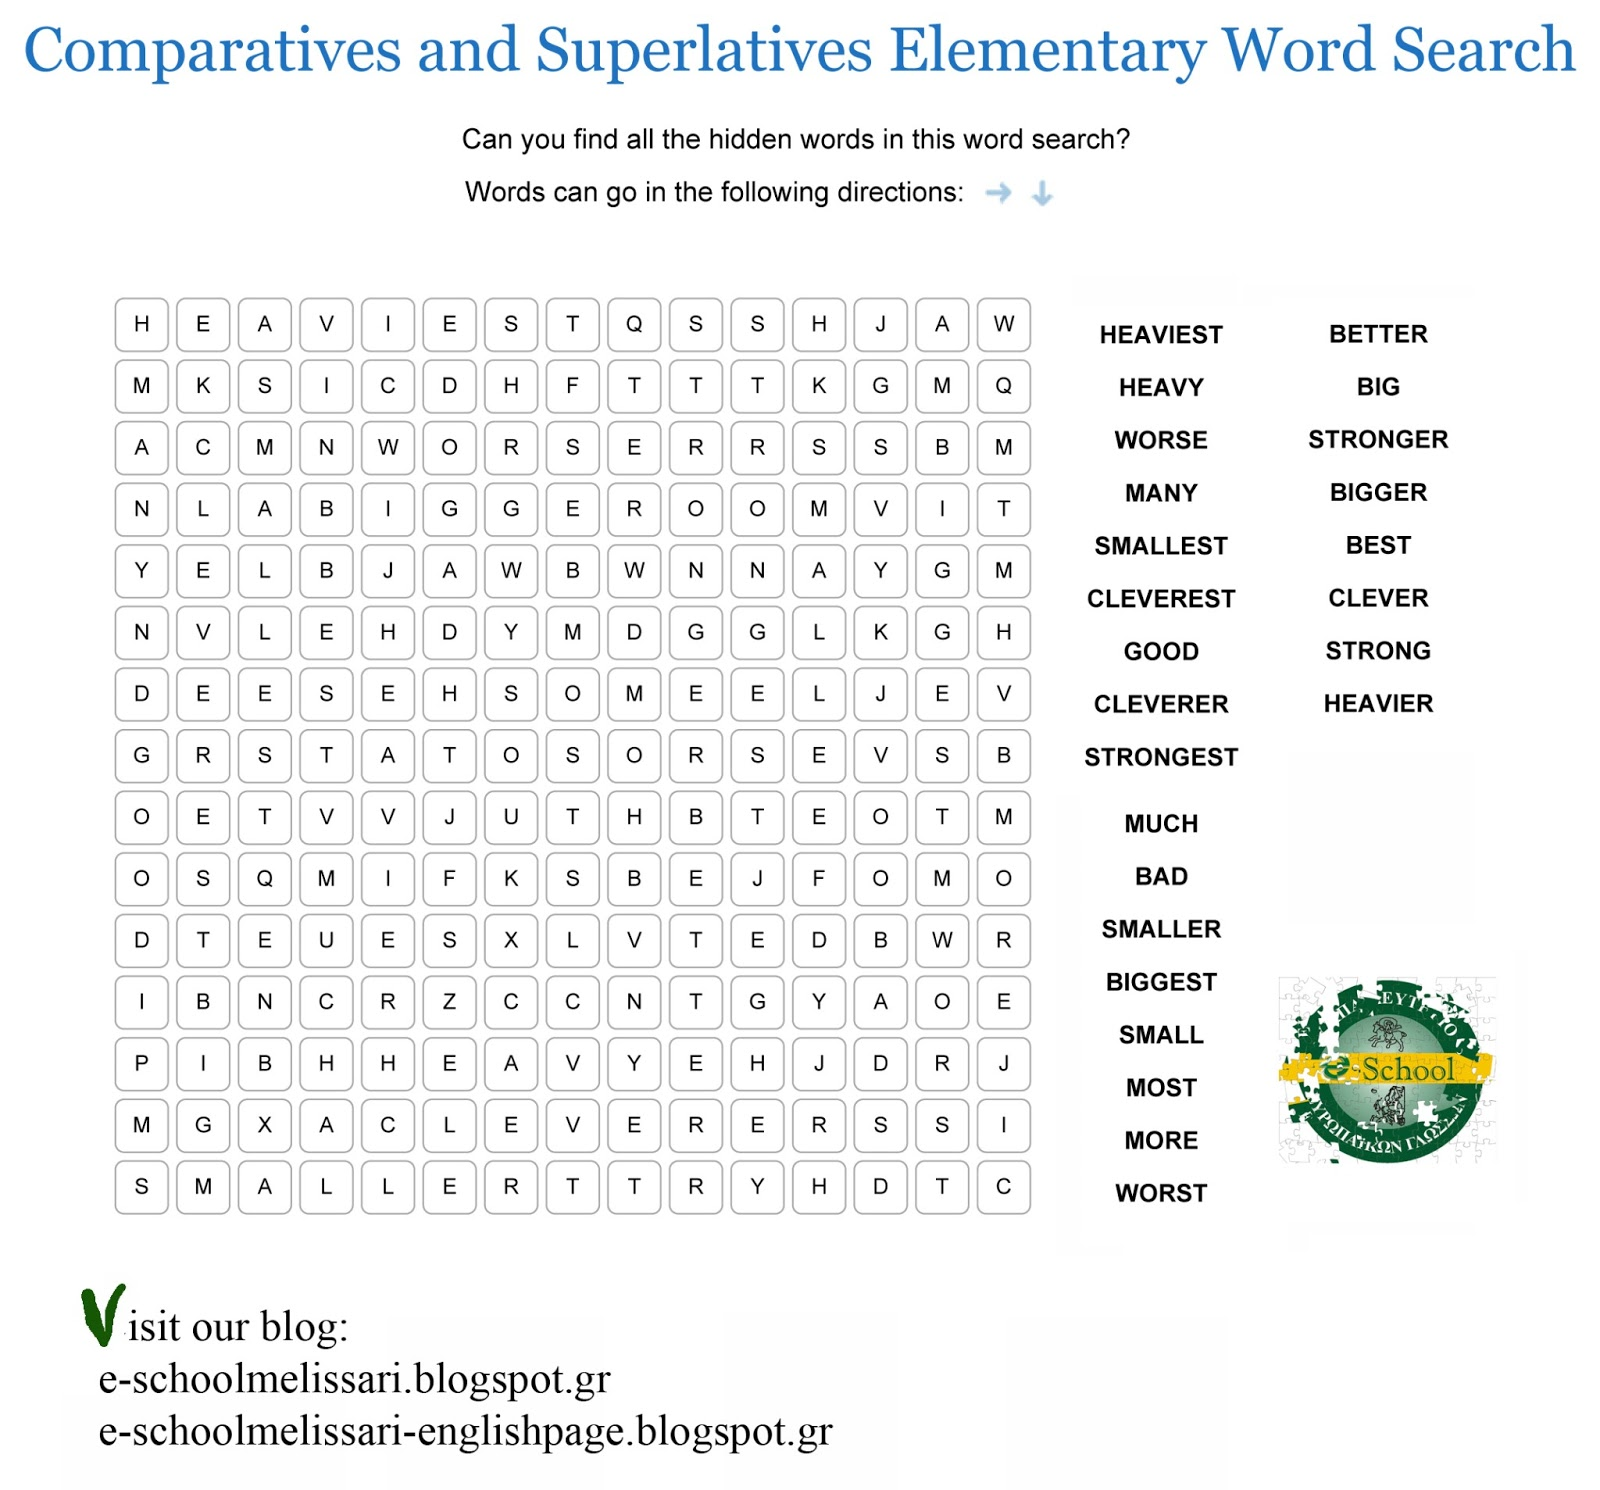 English Page Comparatives And Superlatives